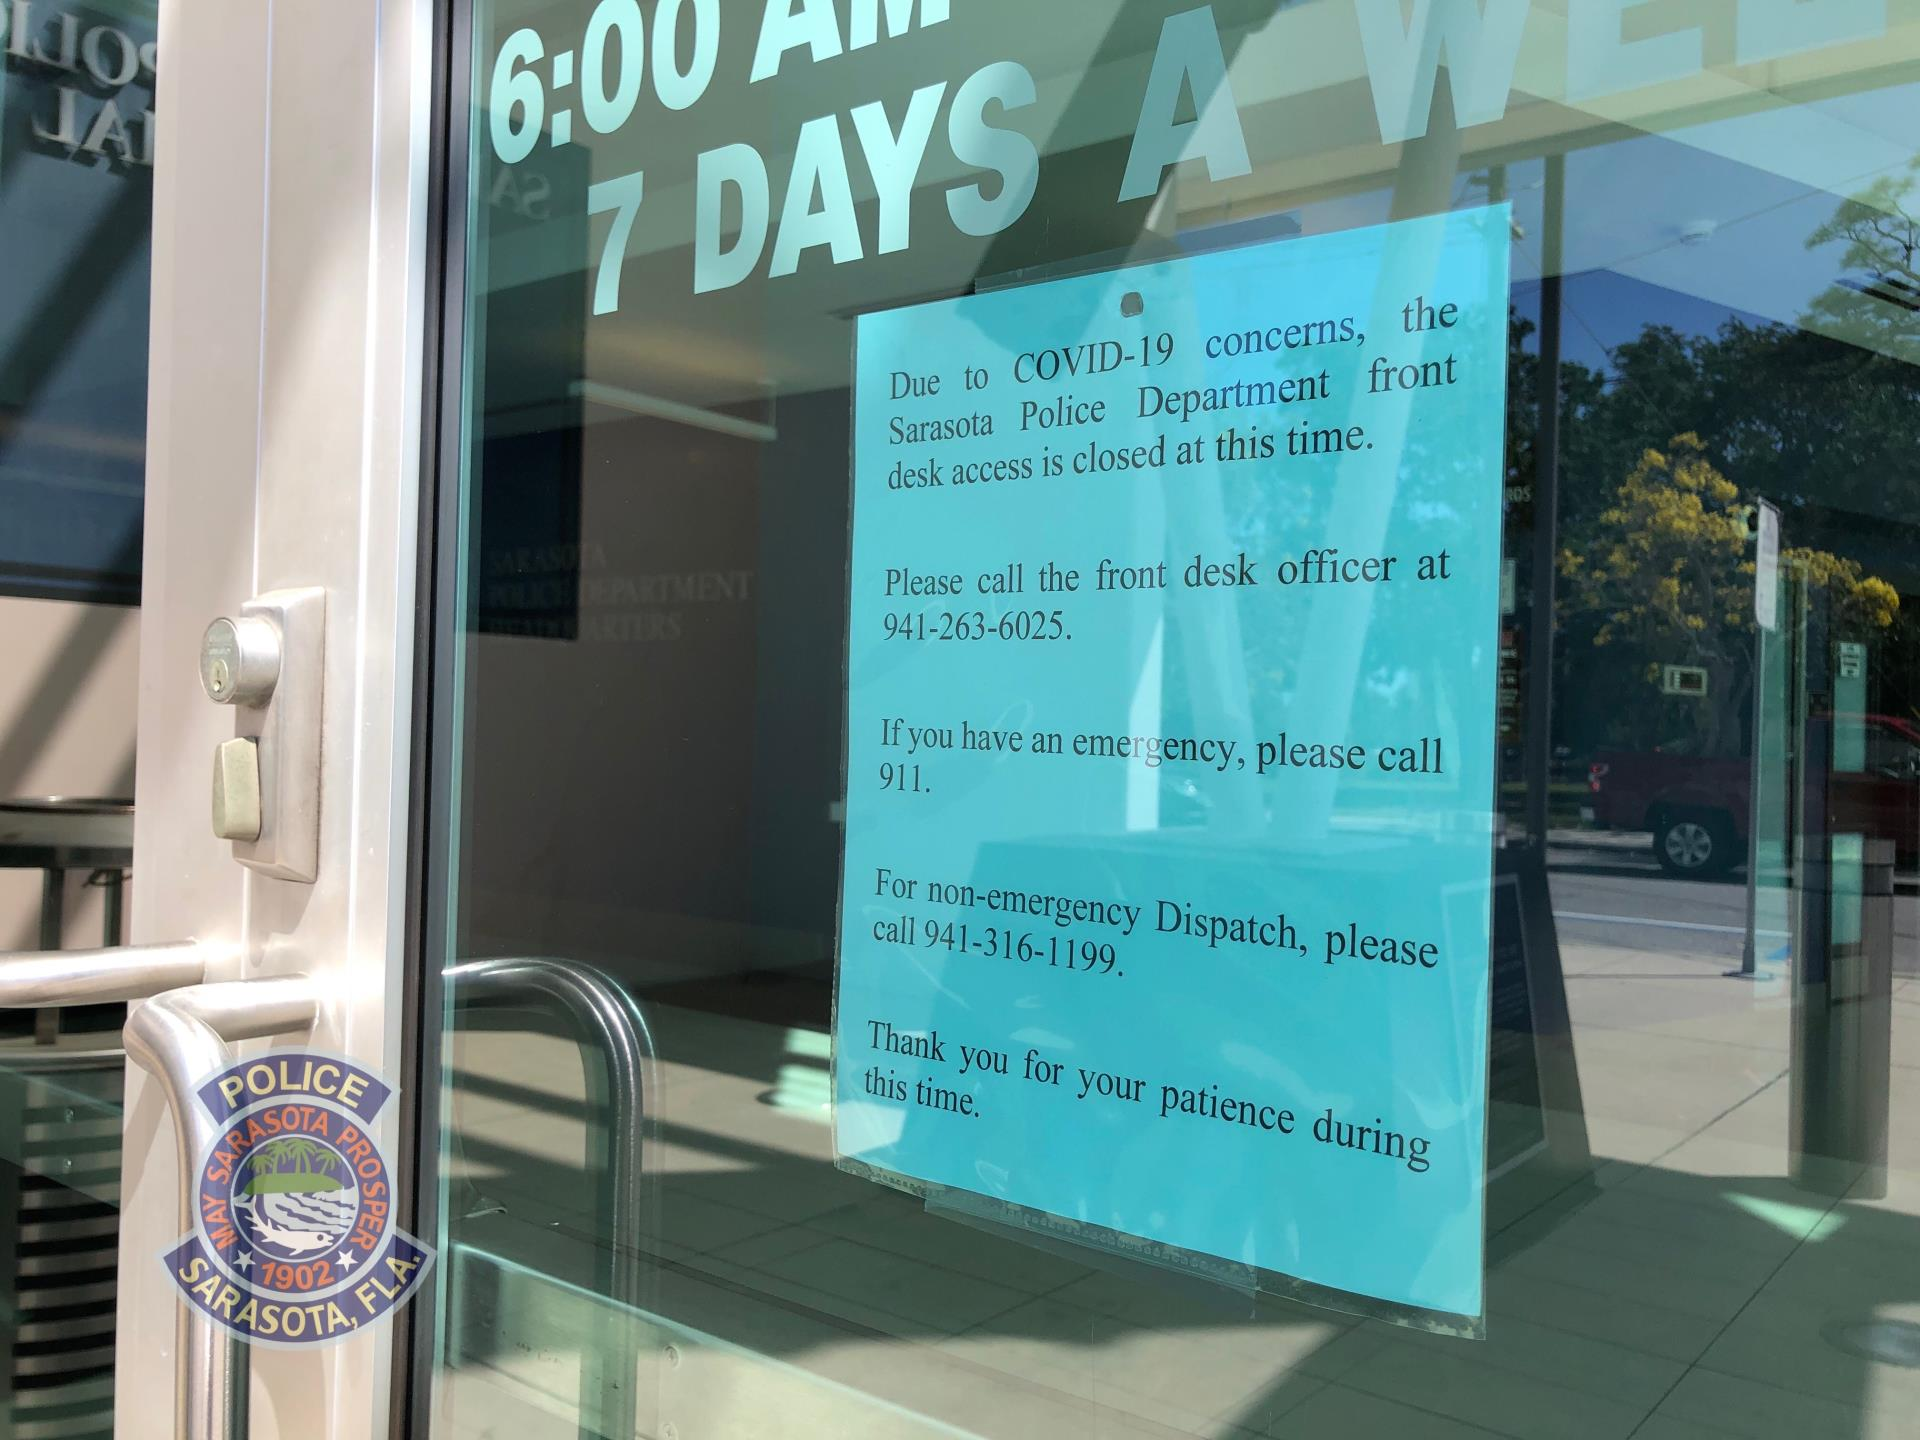 Sarasota Police Department Closes Front Desk Access – Community can call or e-mail